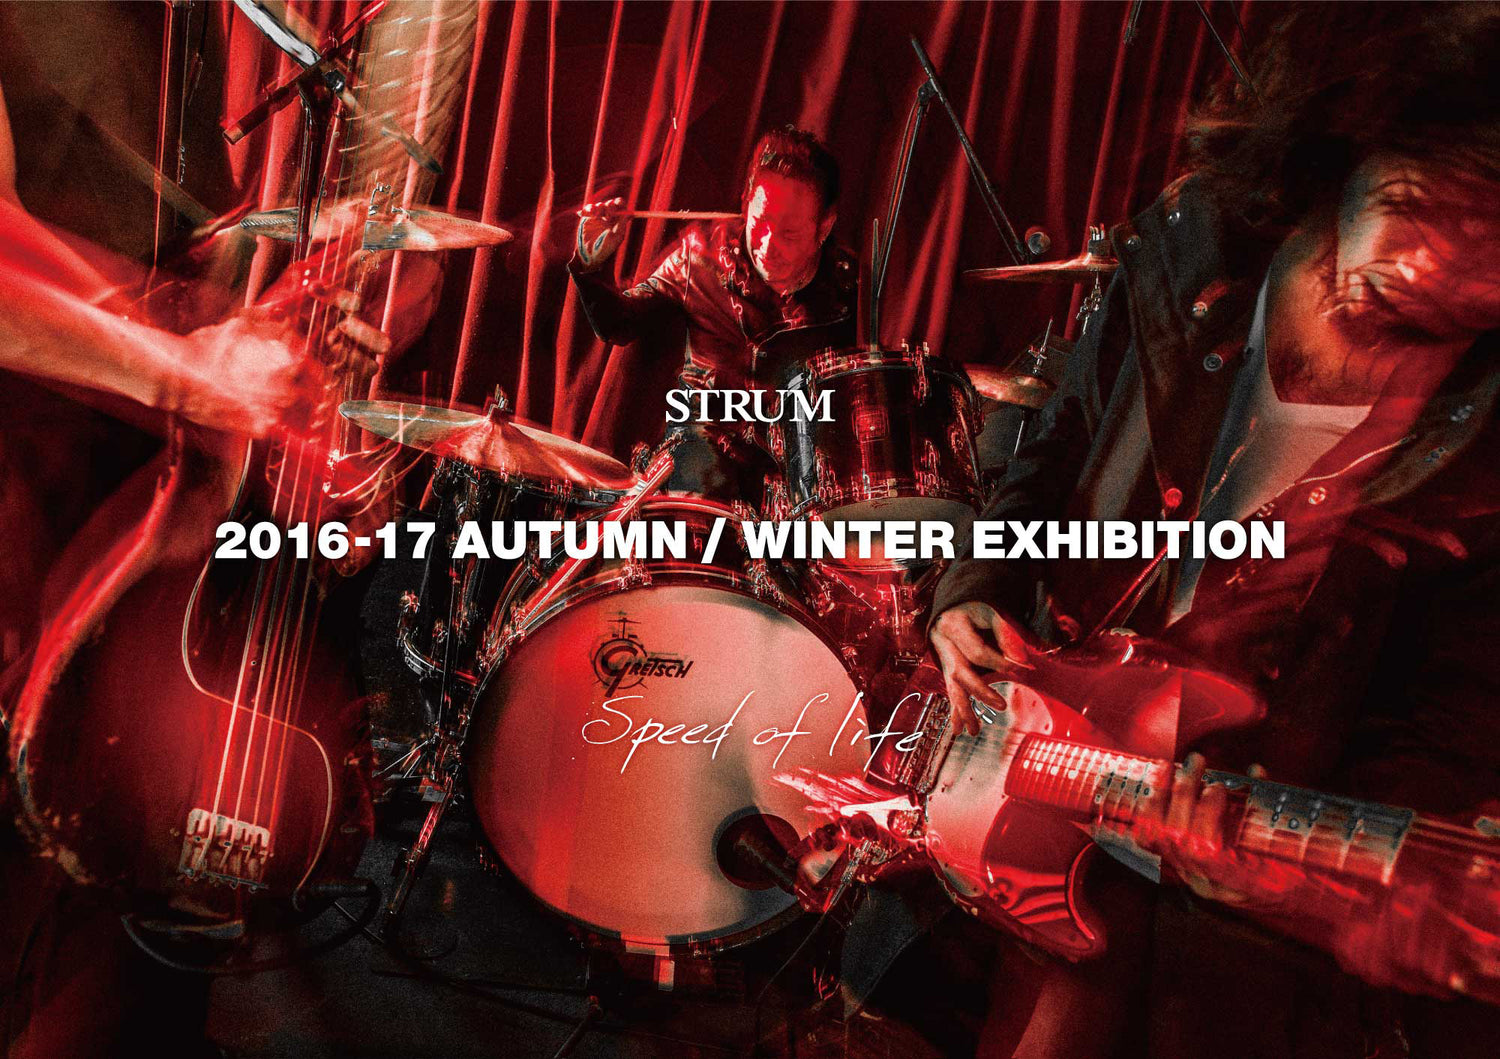 2016-17 AUTUMN / WINTER